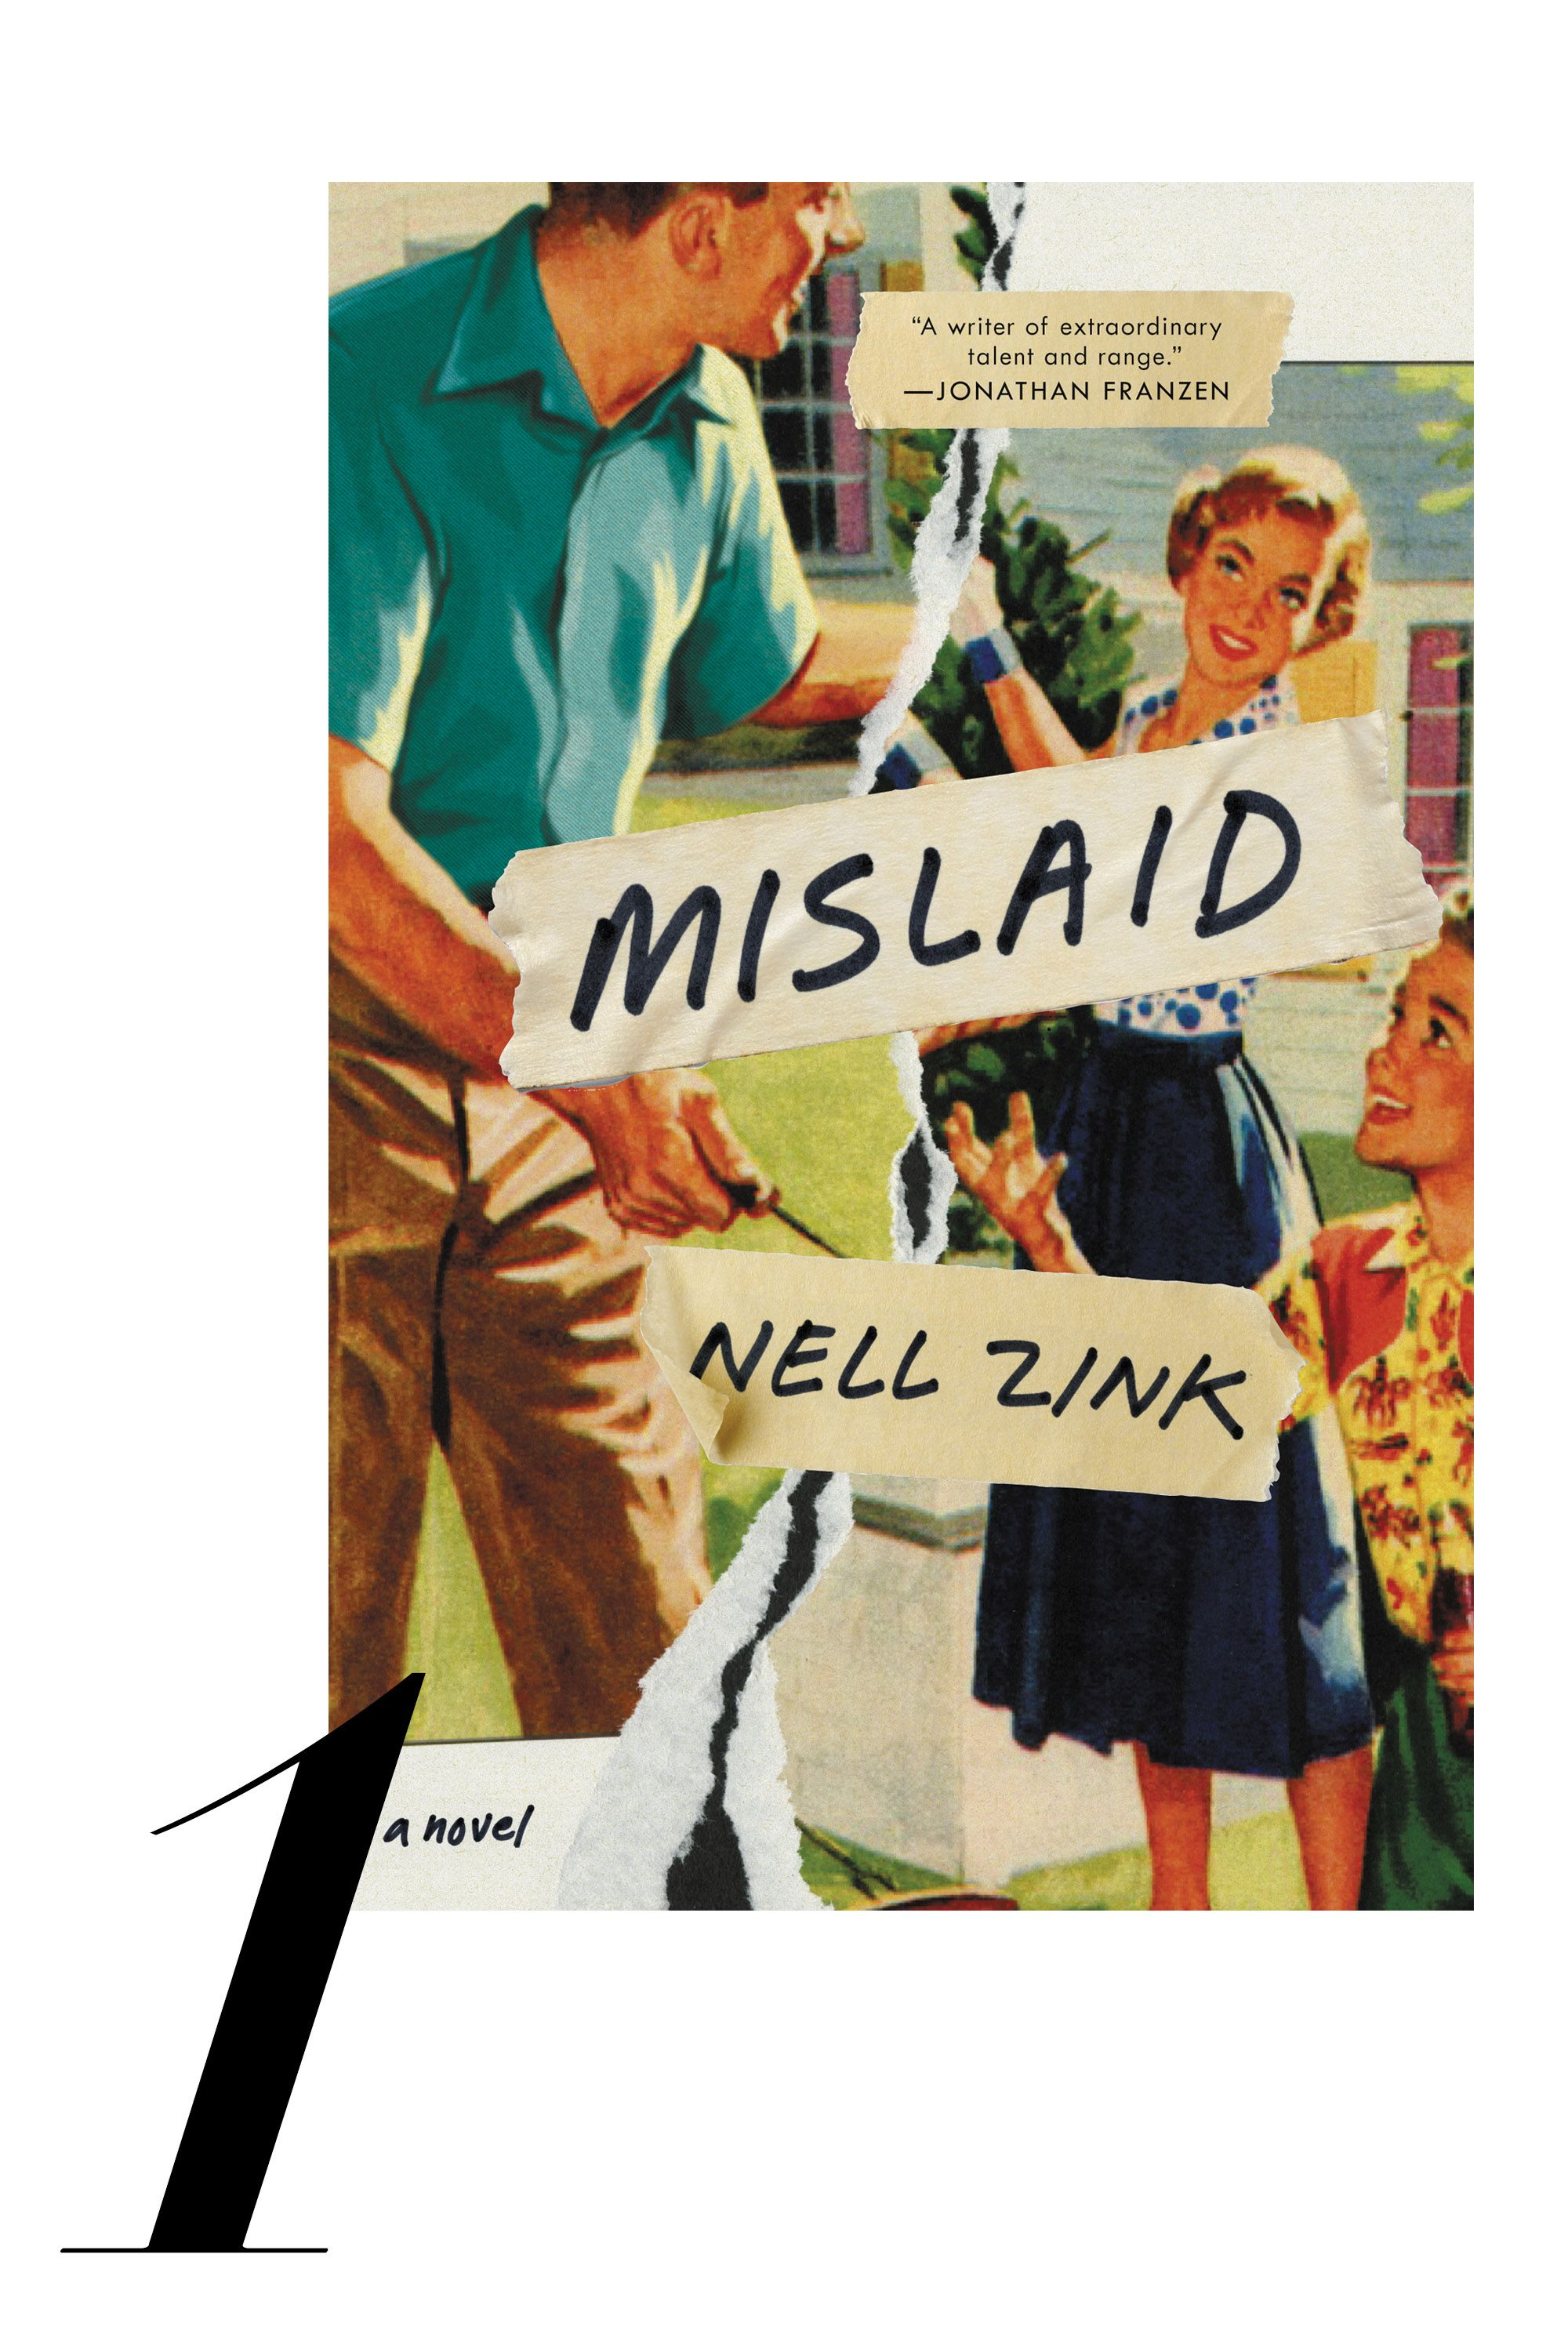 "From the author of <em>The Wallcreeper </em>comes a startlingly original novel about the dissolution of an eccentric American family. <a target=""_blank"" href=""http://www.amazon.com/Mislaid-A-Novel-Nell-Zink/dp/0062364774""><em>Mislaid</em></a> begins at a university in 1960s Virginia, where an impressionable freshman, Peggy, falls for her professor, and powerful poet, Lee. Her unplanned pregnancy results in an ill-fated marriage and dysfunctional family life. Peggy ultimately flees with her daughter to start anew, leaving her son behind. Years later the children must reconcile with their past and the complexities of race, sexual identity, and desire. 